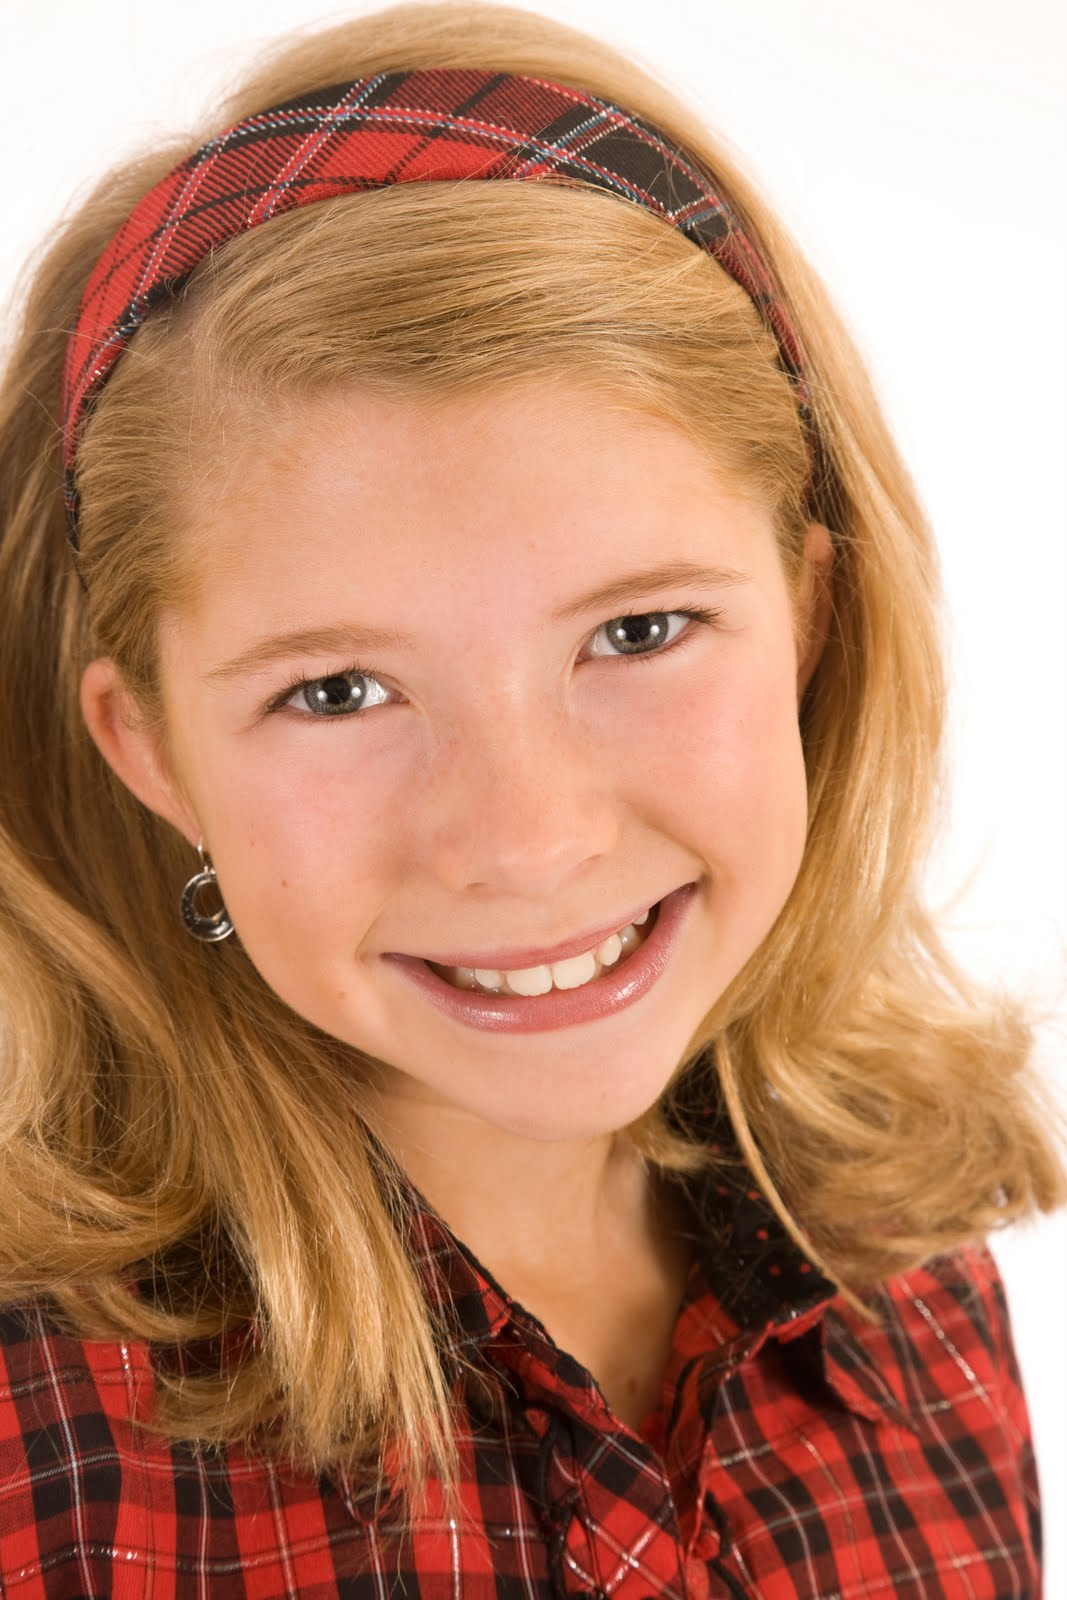 National American Miss Iowa Junior Pre-Teen 2009